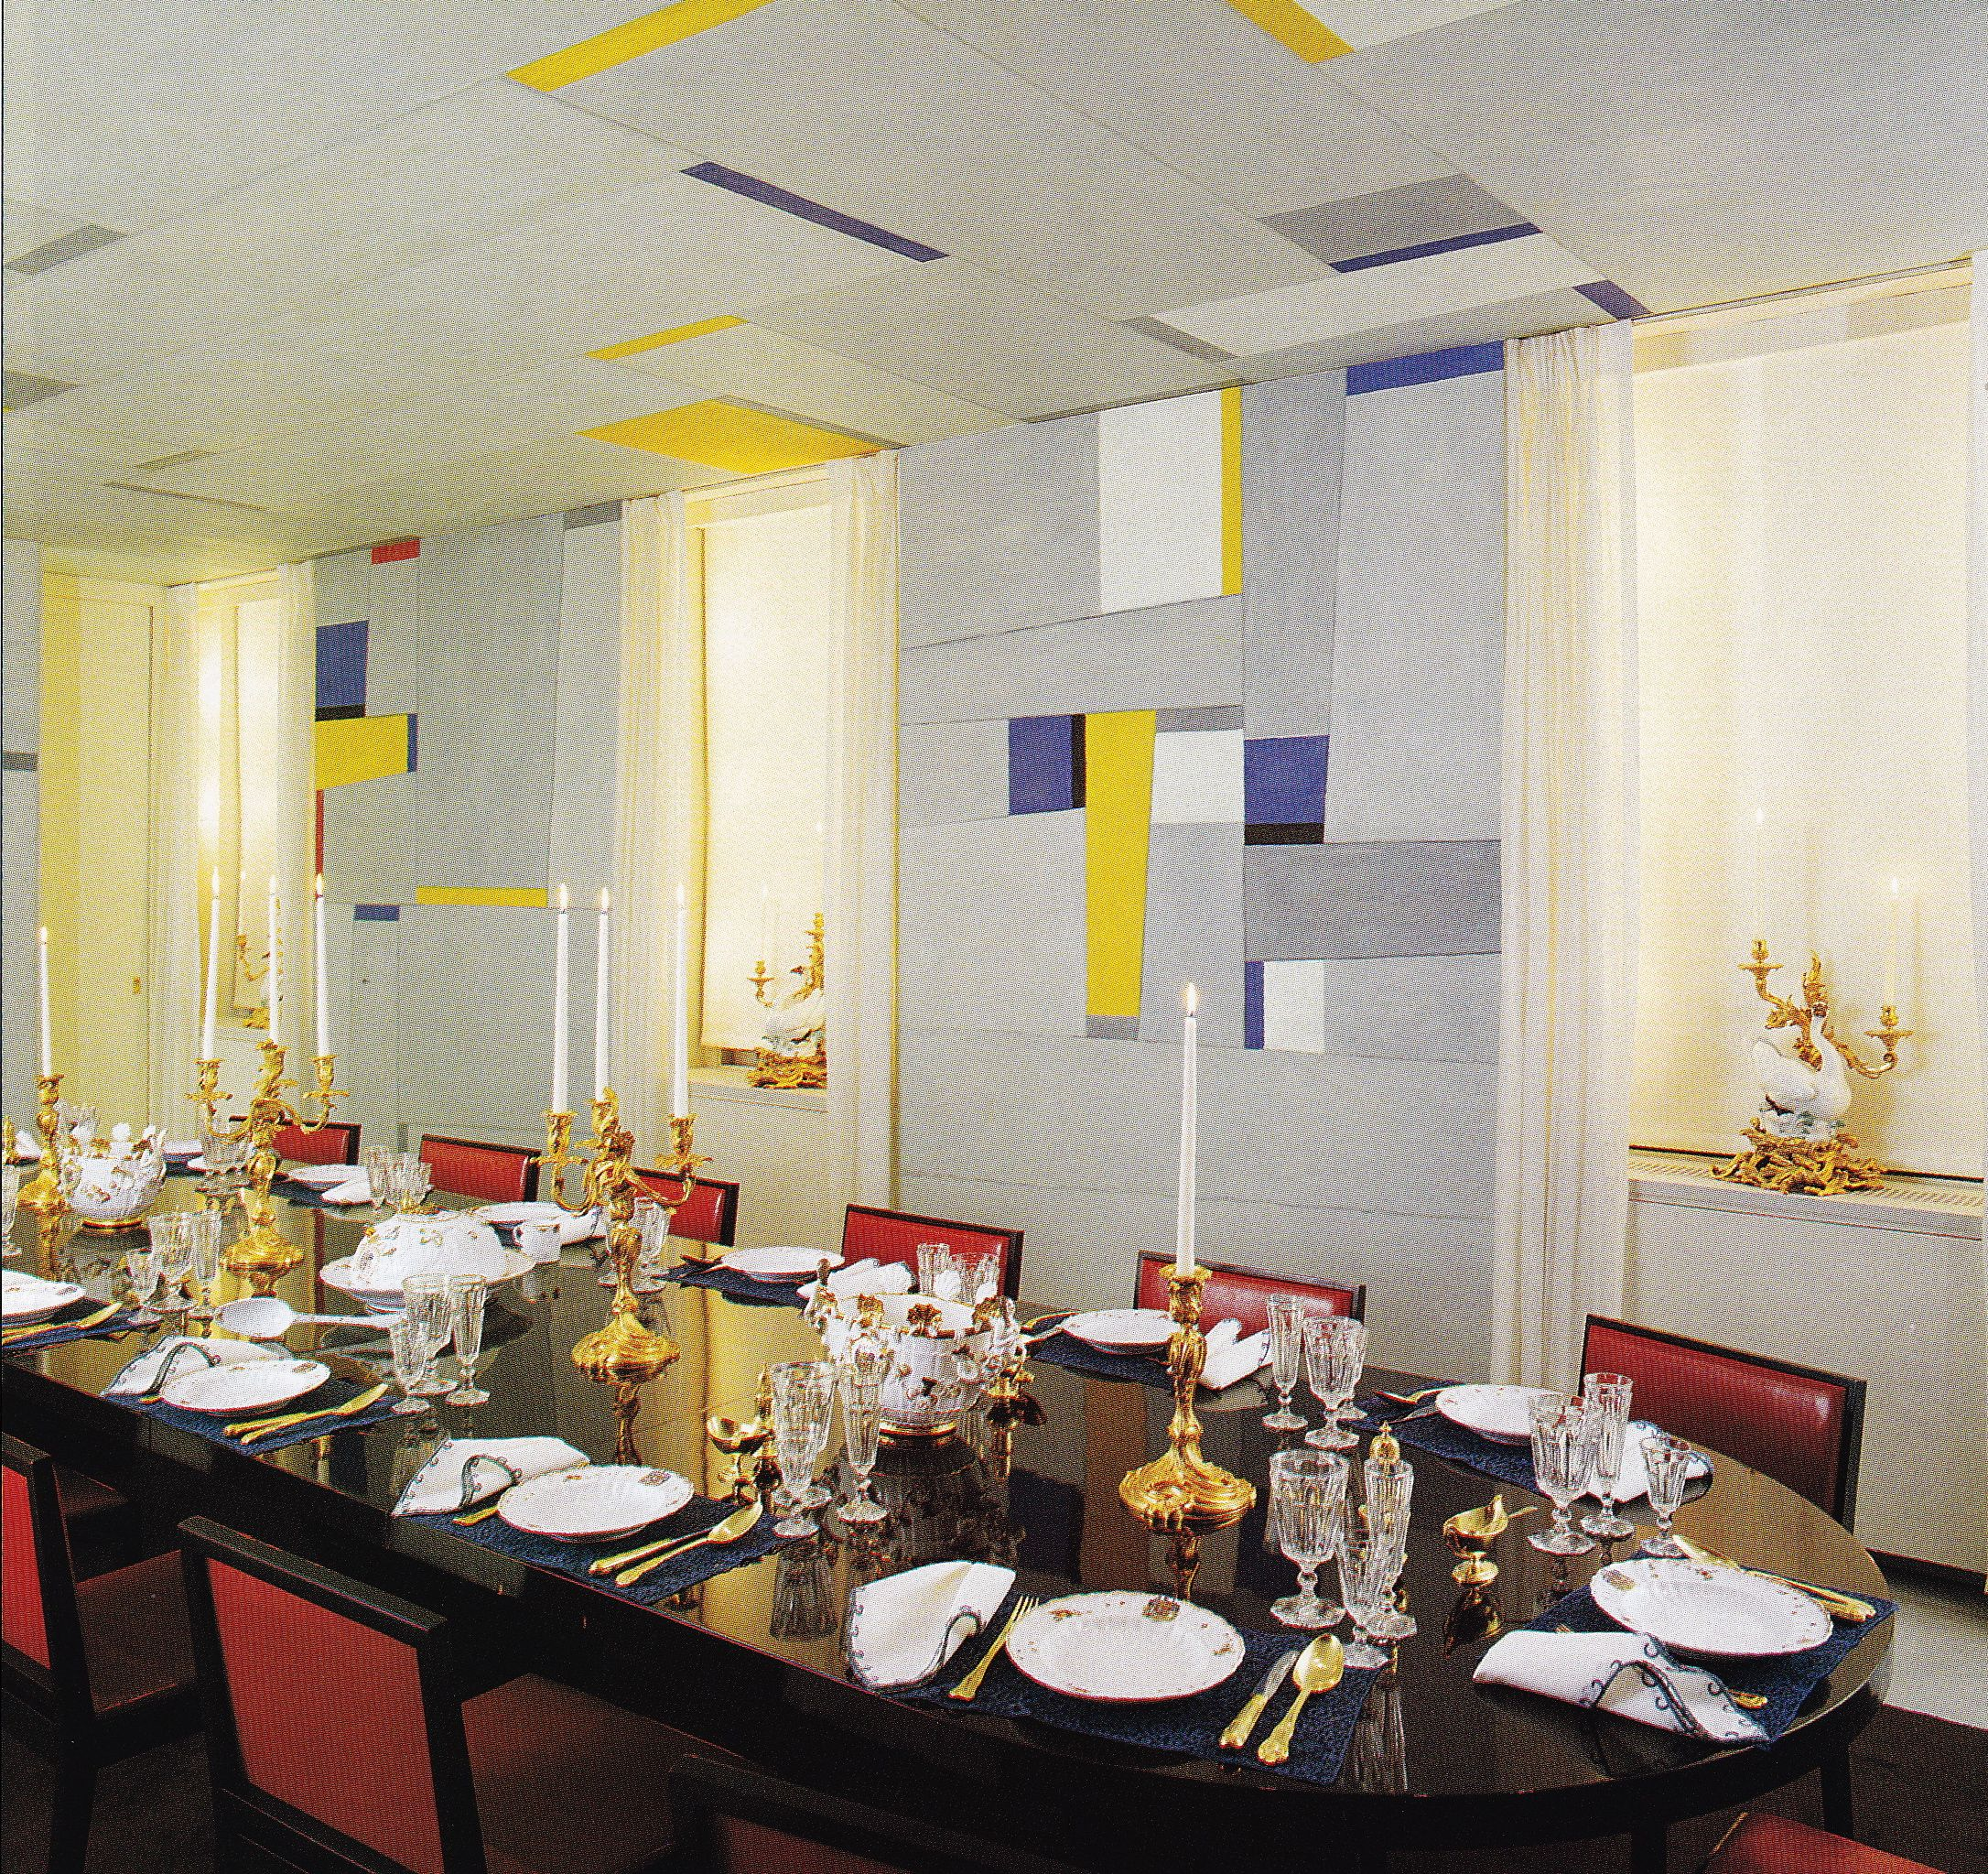 dining room wall stickers uk destroybmx com the rockefeller s dining room in the 1960 s the abstract wall mural was created by